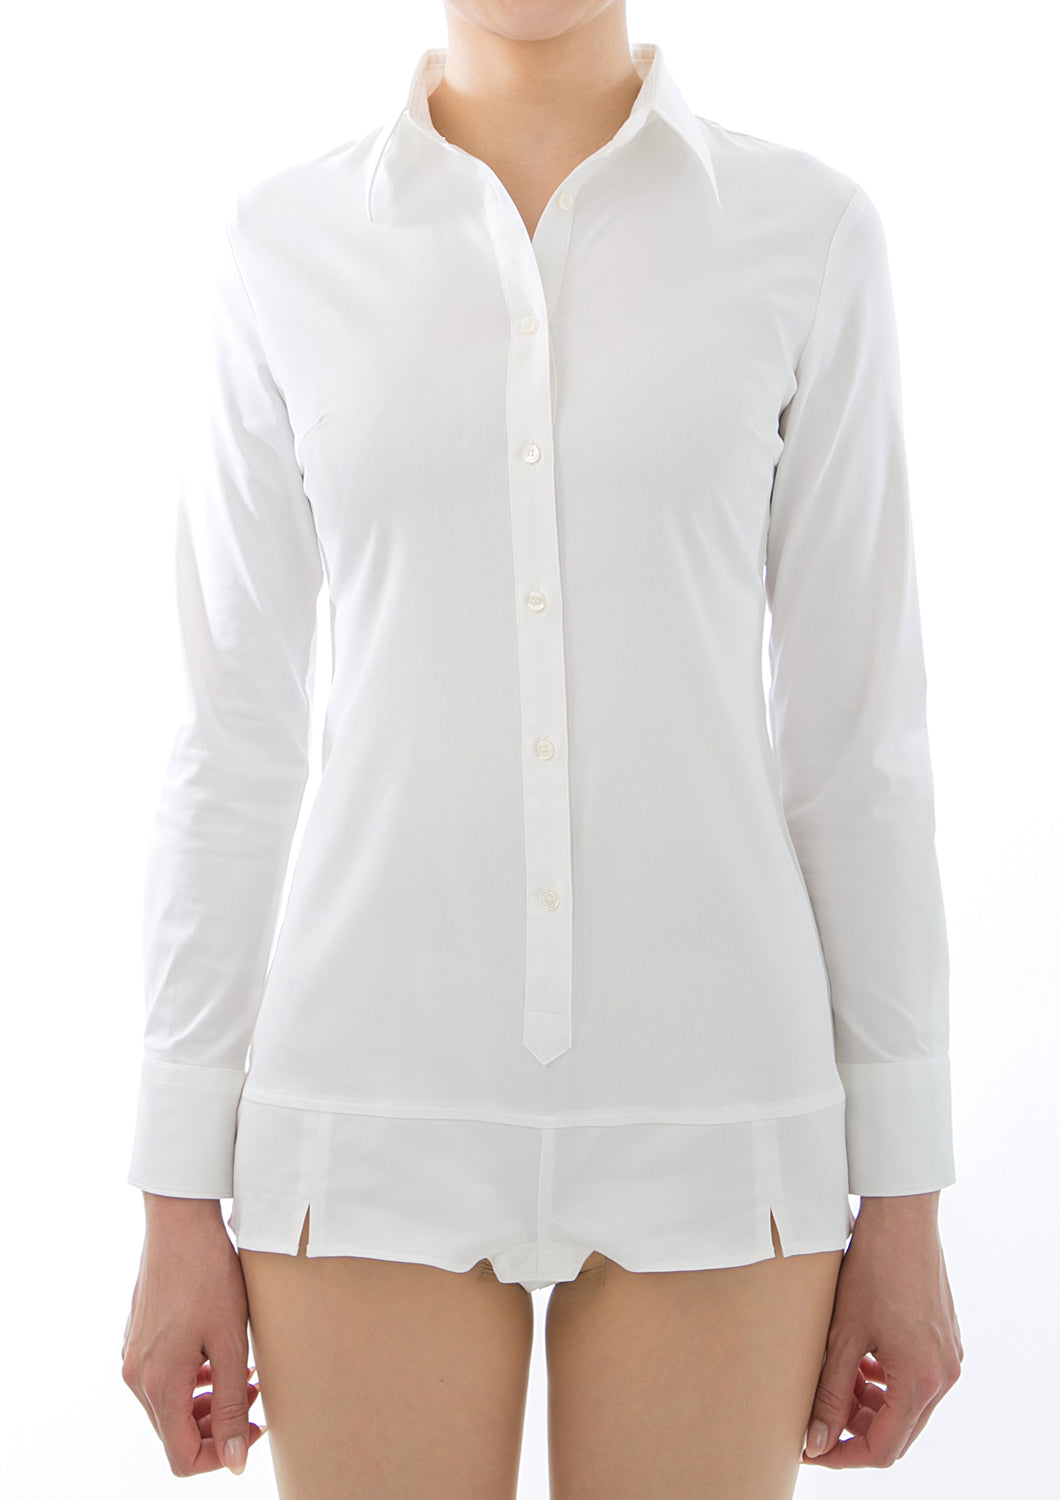 Premium Stretch & Easy Care Long Sleeve Bodysuit Shirt - LEONIS SHIRTS & FAVORITES